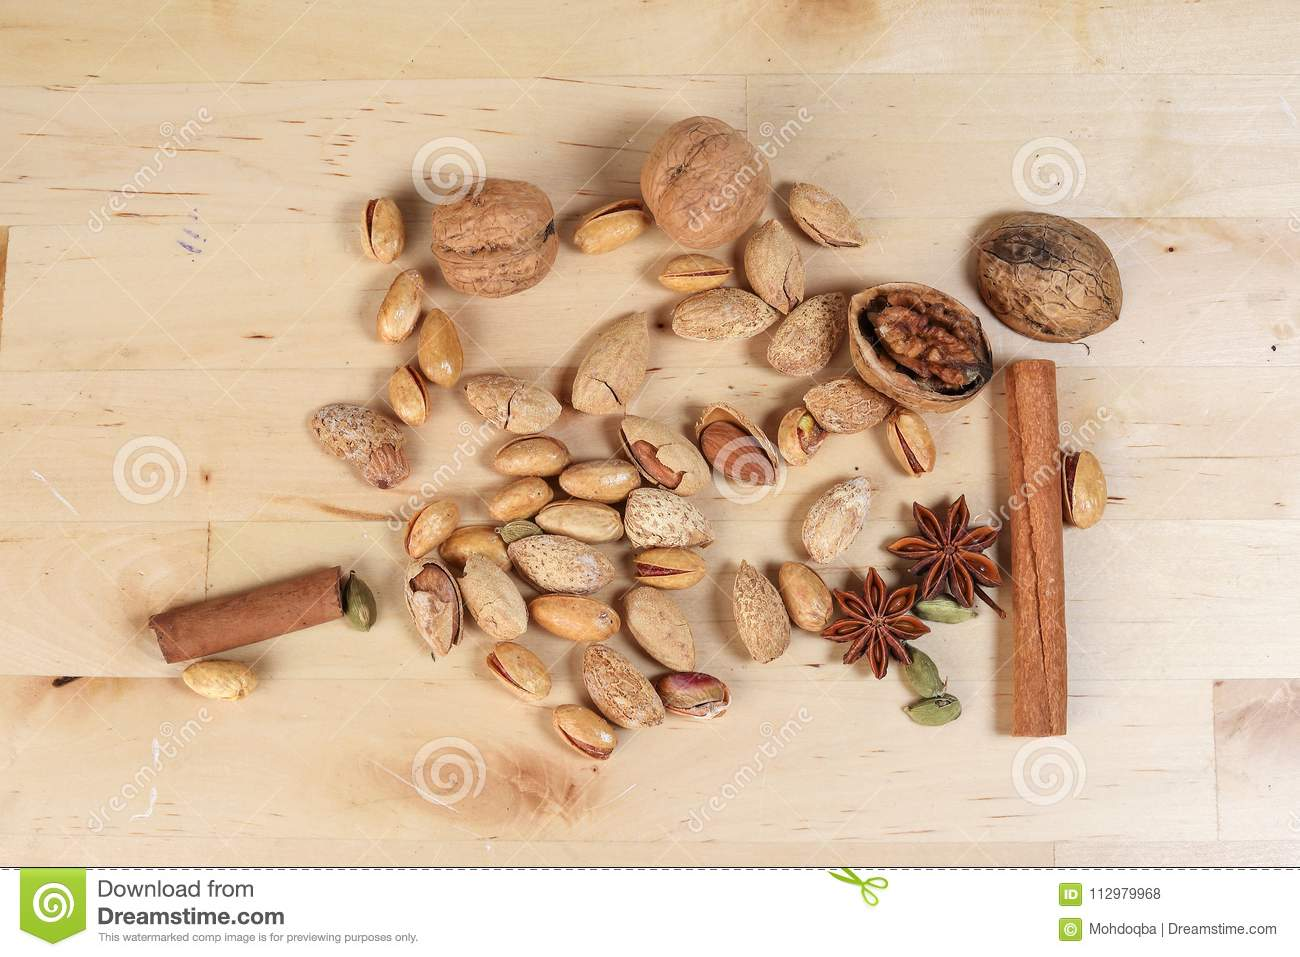 Nuts spice mix on rustic wood